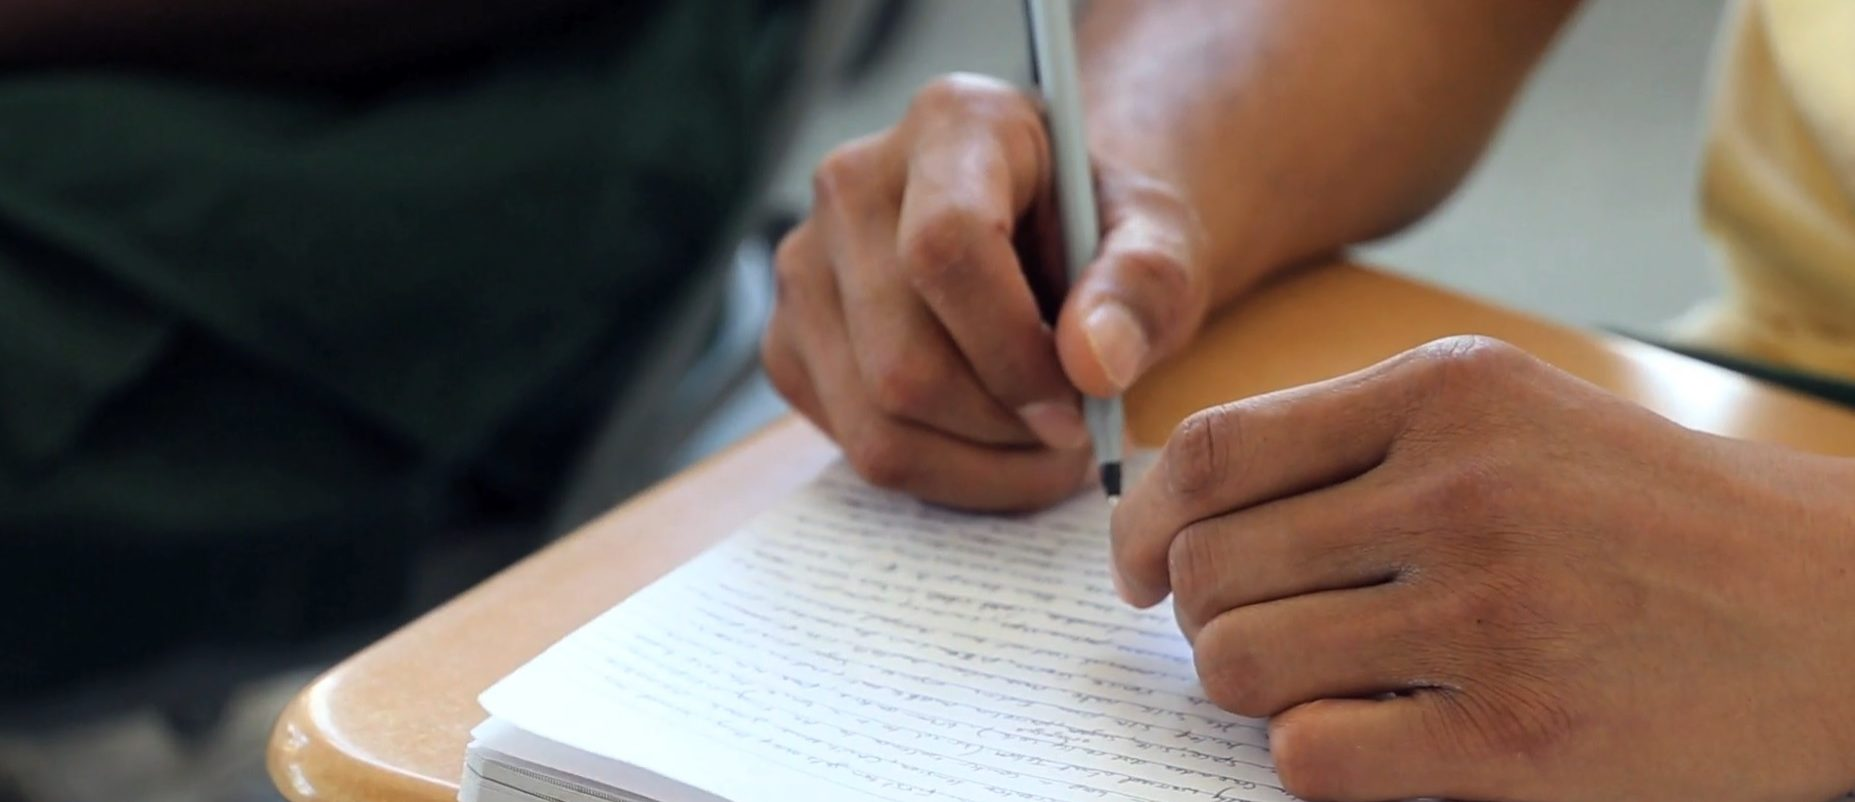 Student writing in a book